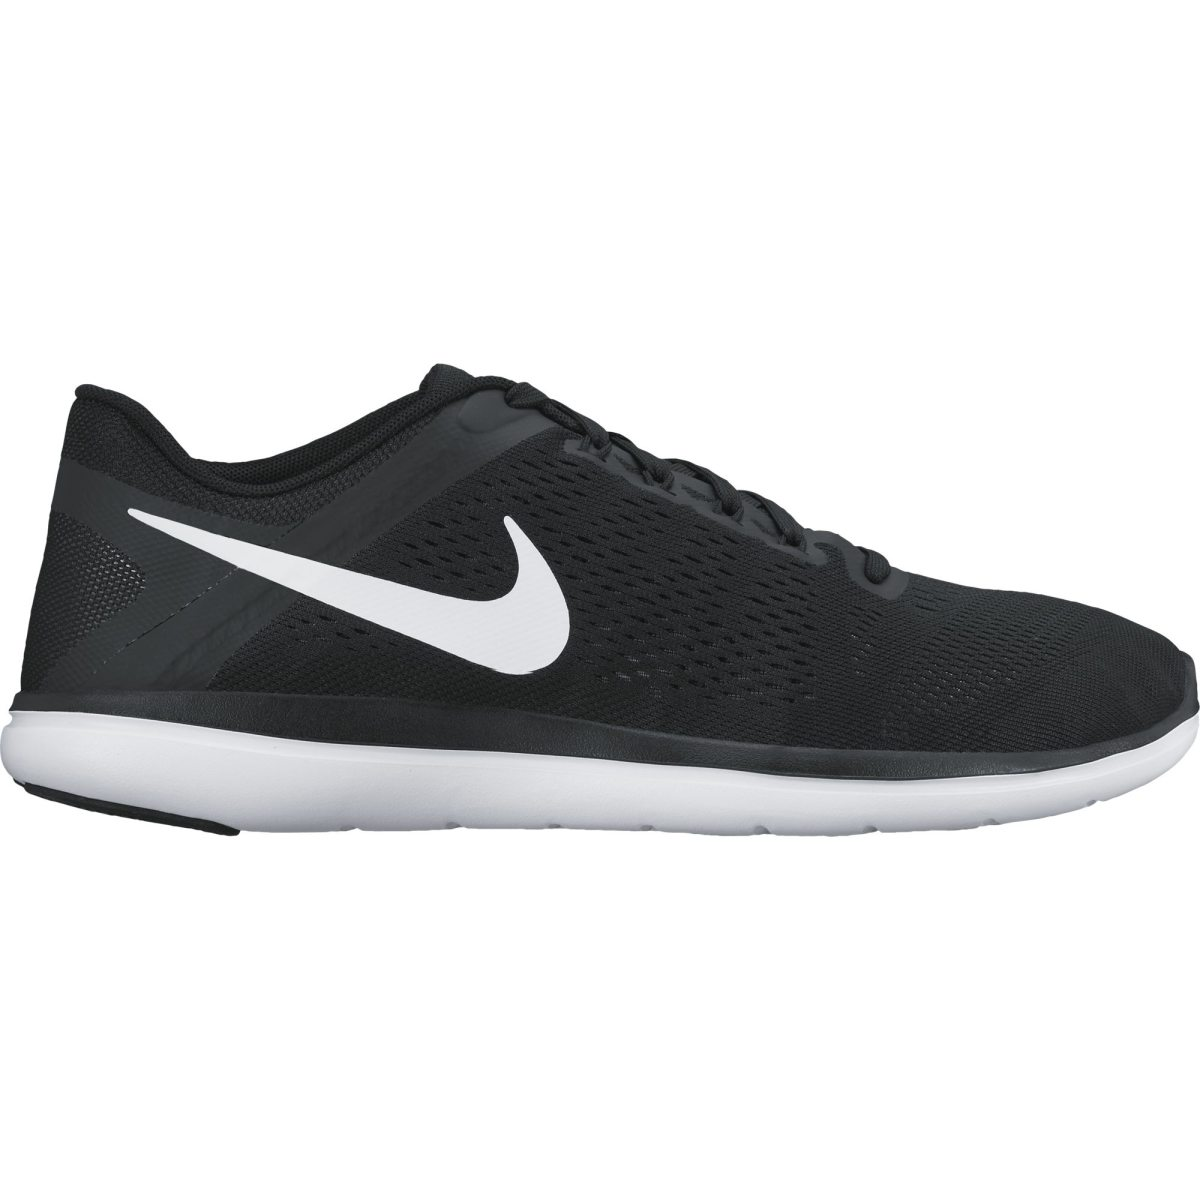 the herre internet available air entire nike viaShop 80kOwPn